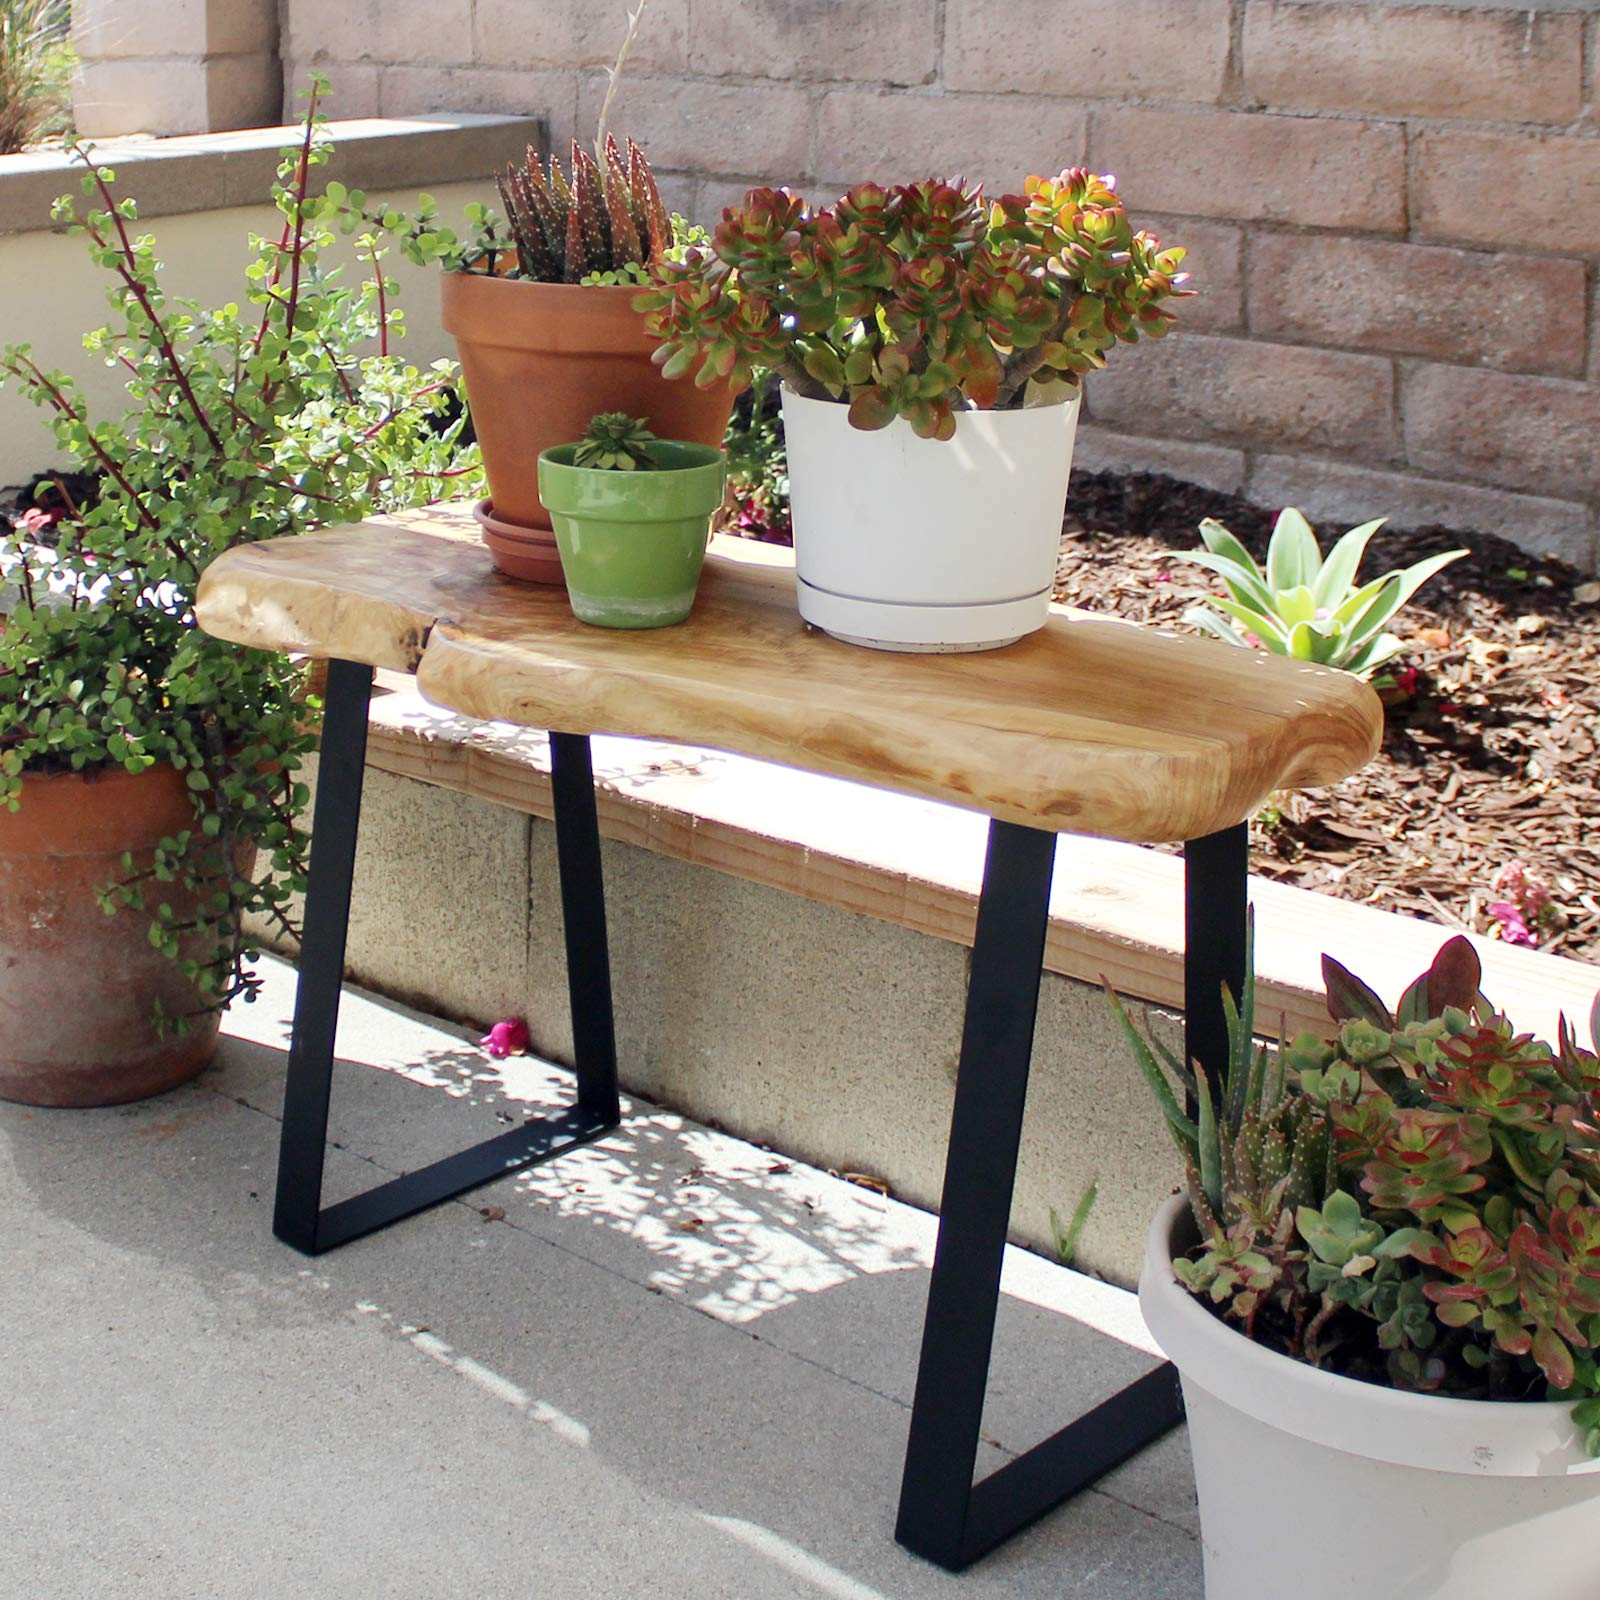 WELLAND Natural Edge Solid Wood Bench with Metal Legs, Cedar, 28'' Long by WELLAND (Image #5)